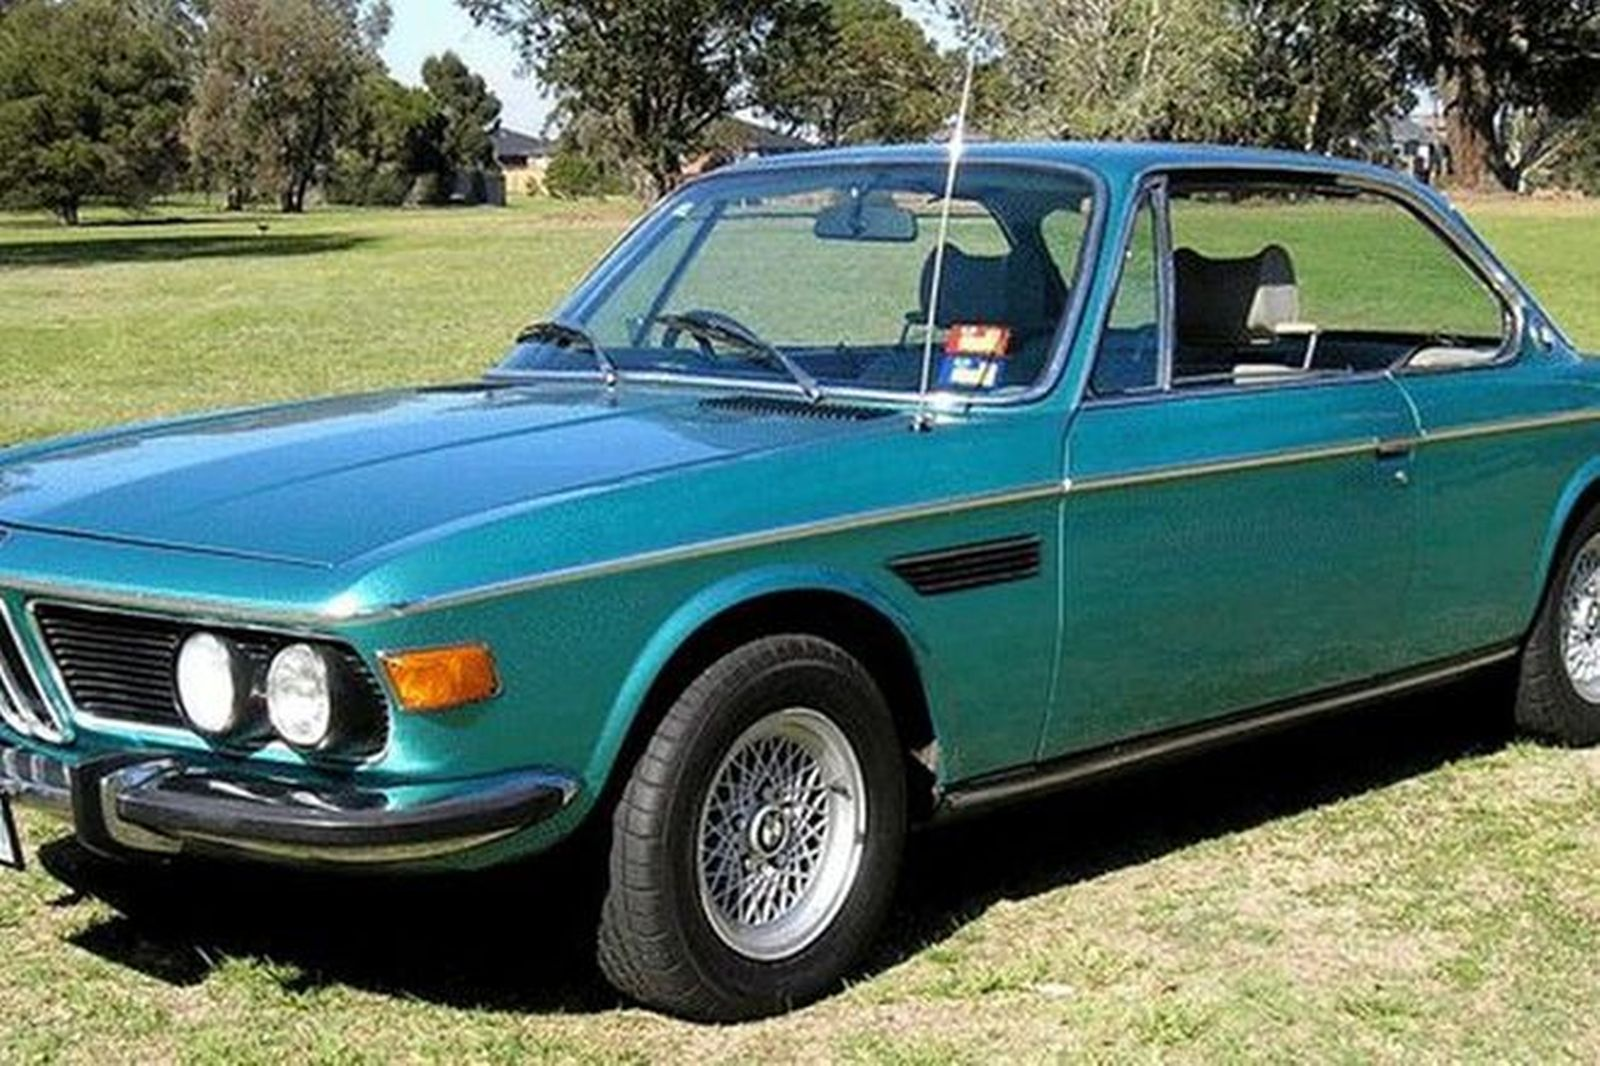 sold bmw 3 0csi coupe auctions lot 10 shannons. Black Bedroom Furniture Sets. Home Design Ideas